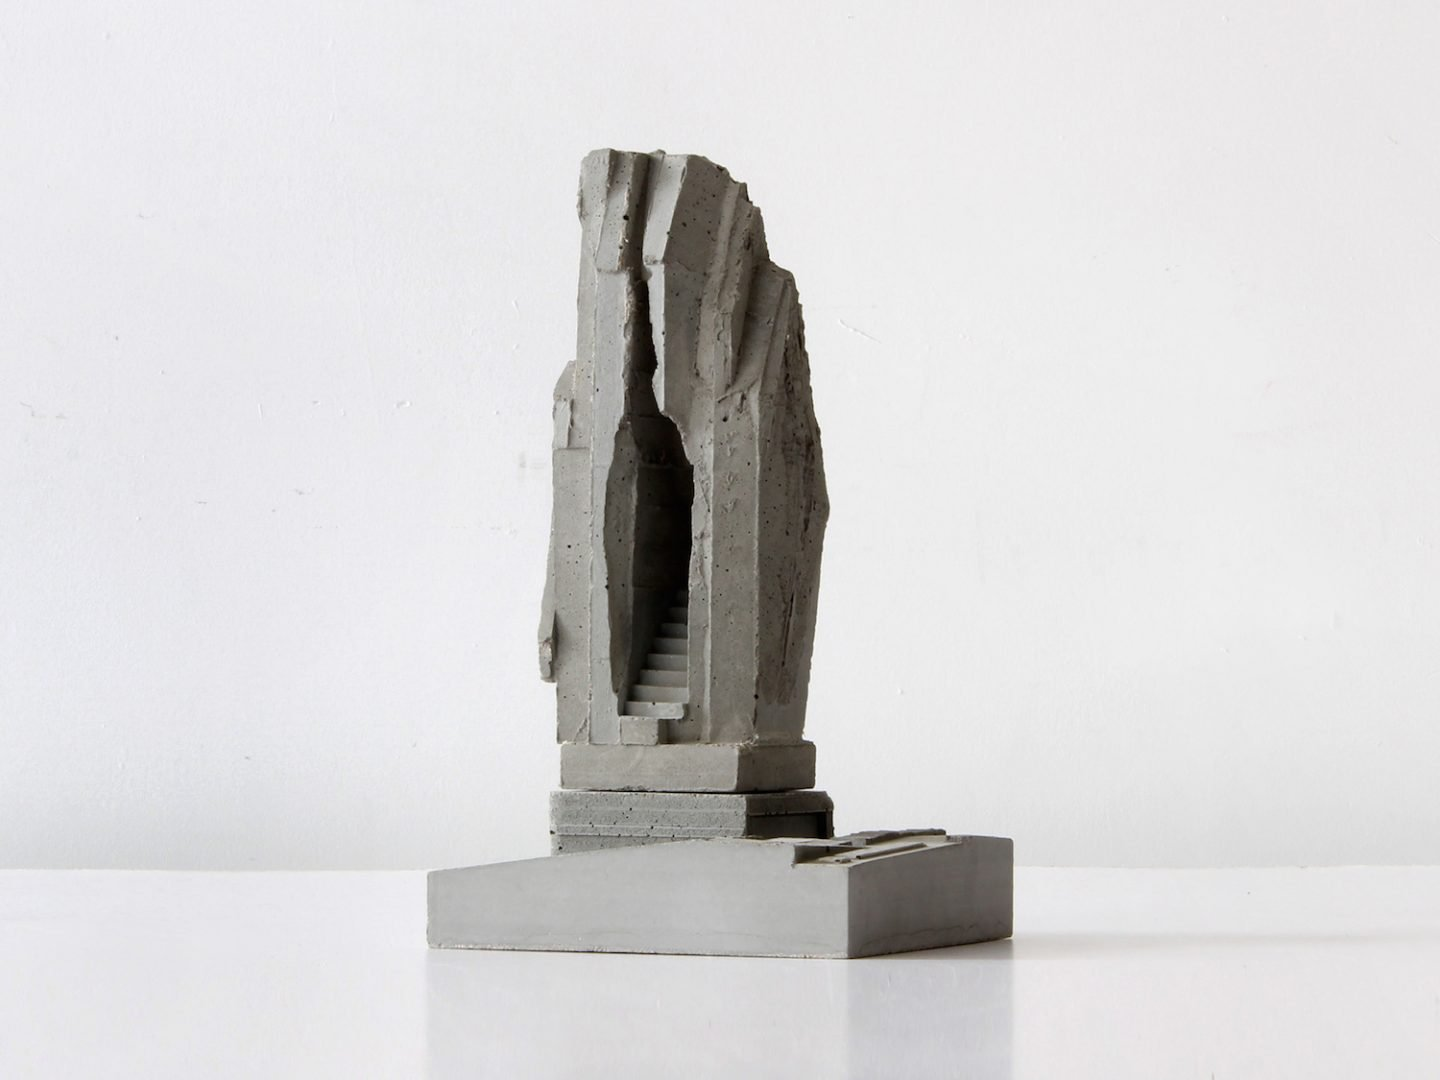 iGNANT_Art_Concrete_Modular_Sculptures_David_Umemoto10